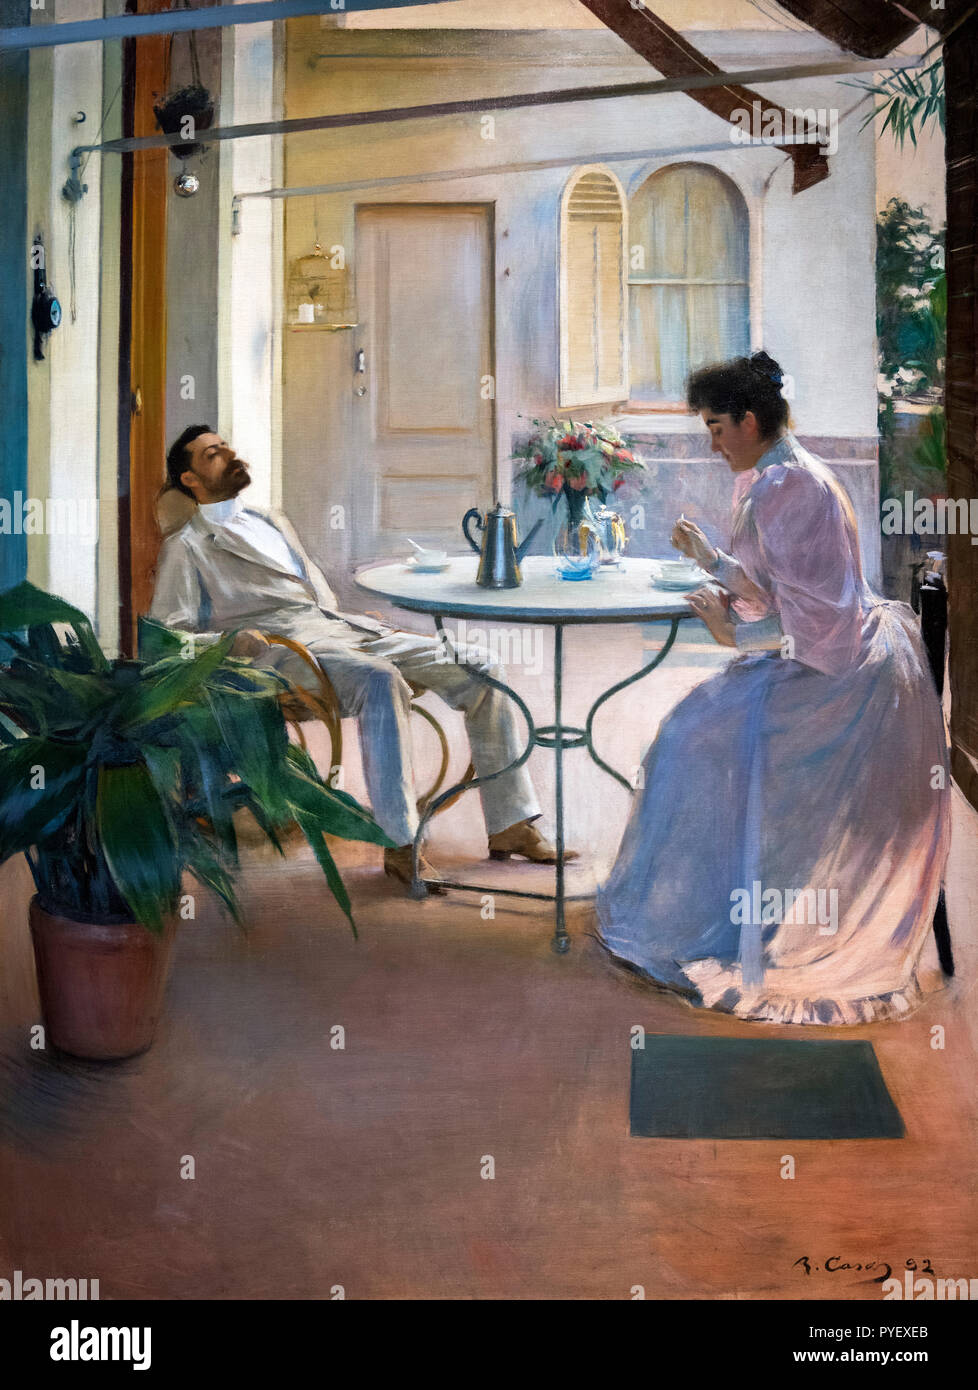 Interior in the Open Air by Ramon Casas i Carbó (1866-1932), oil on canvas, c.1892 - Stock Image